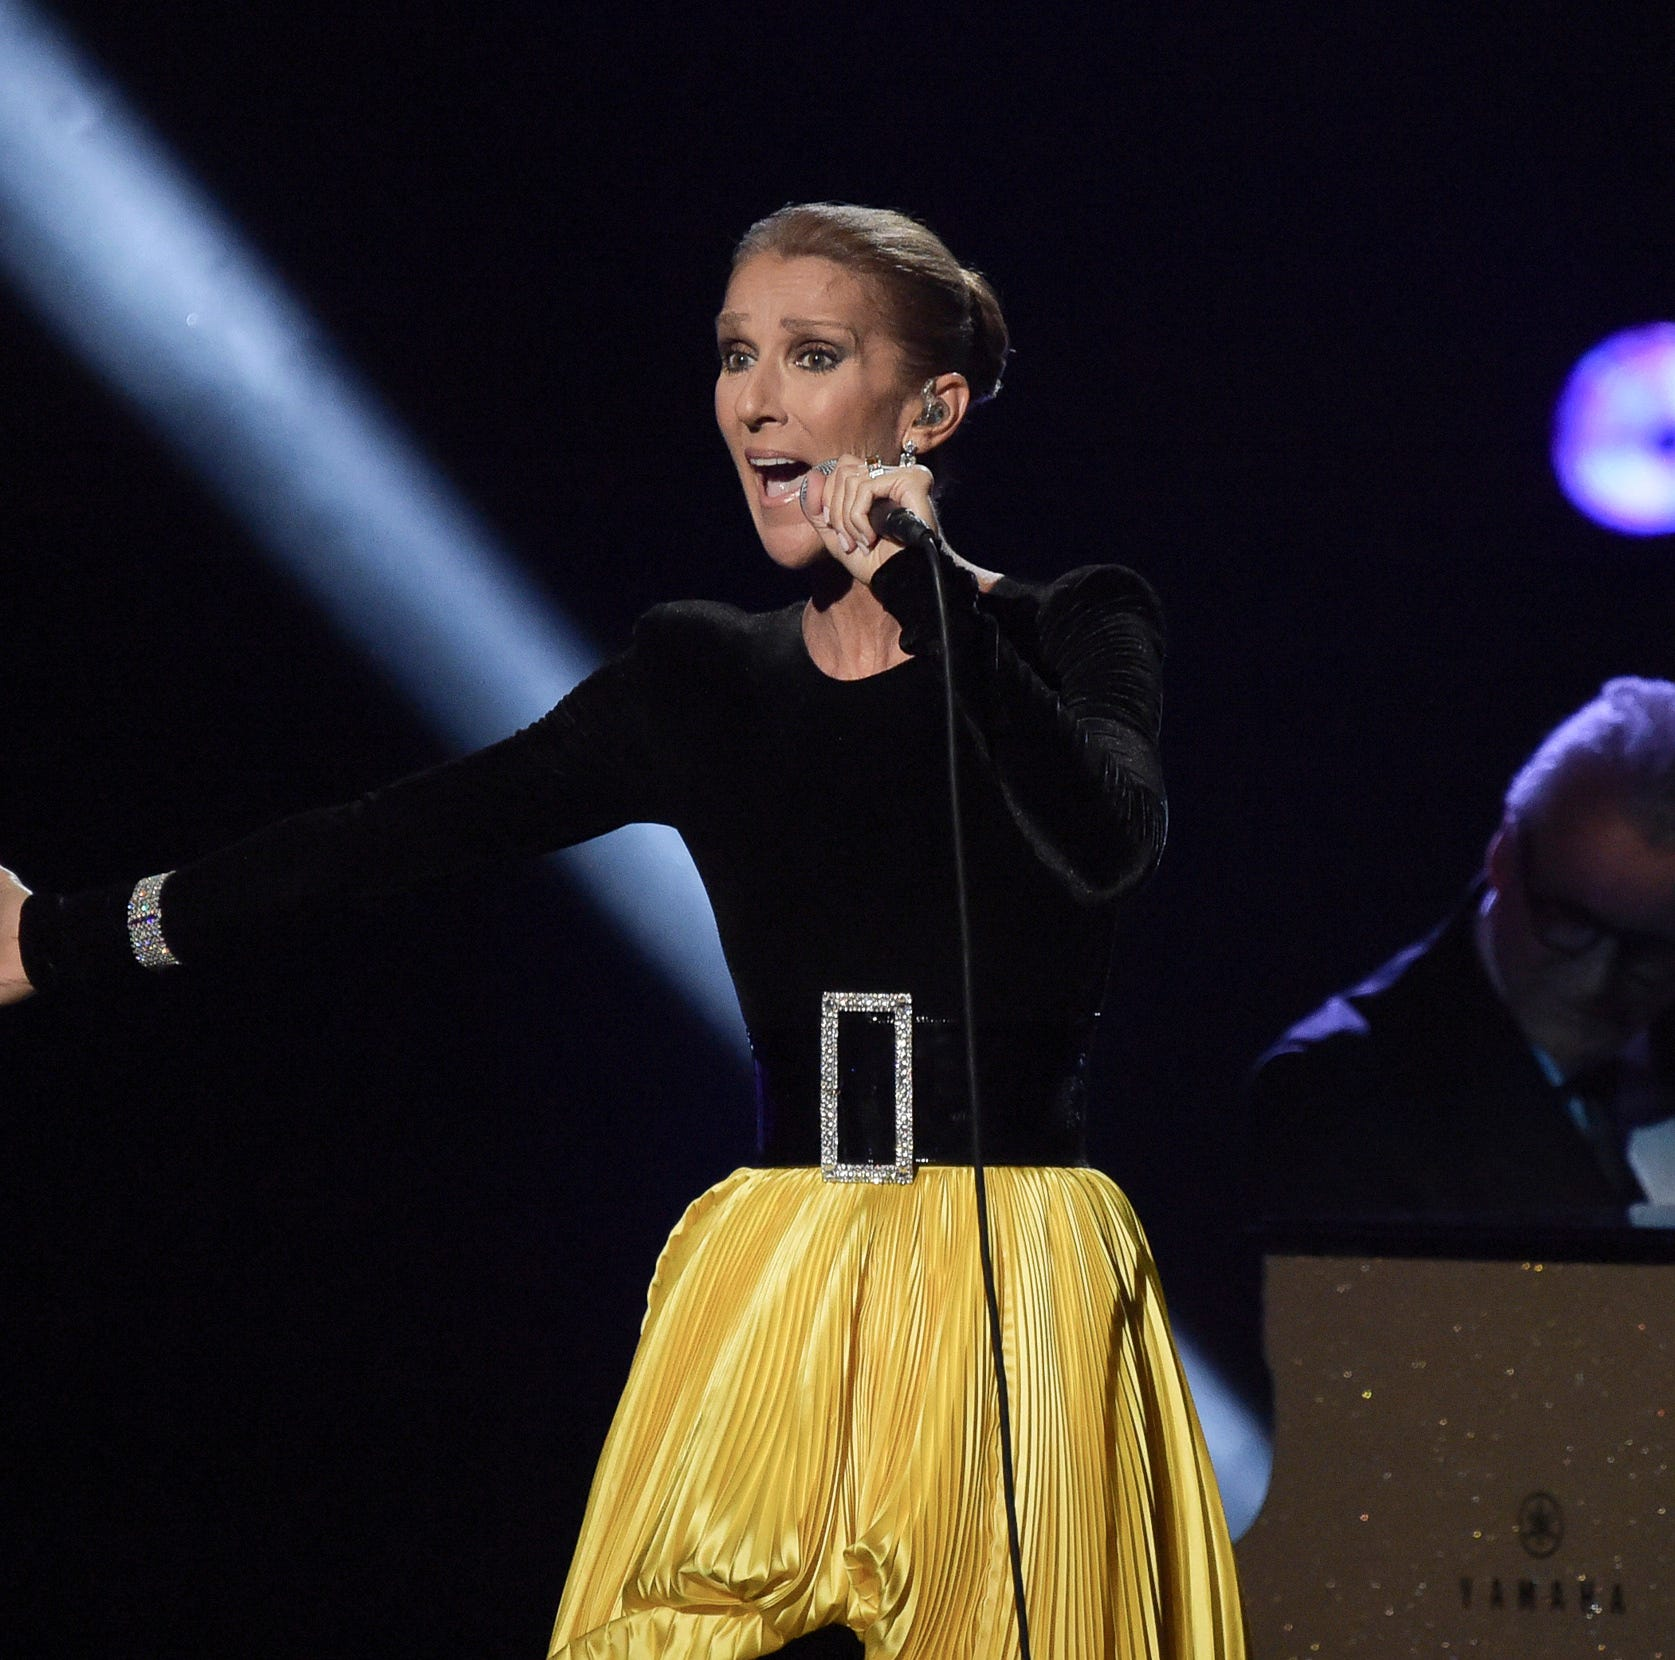 Celine Dion is coming to Cincy. Our hearts will go on